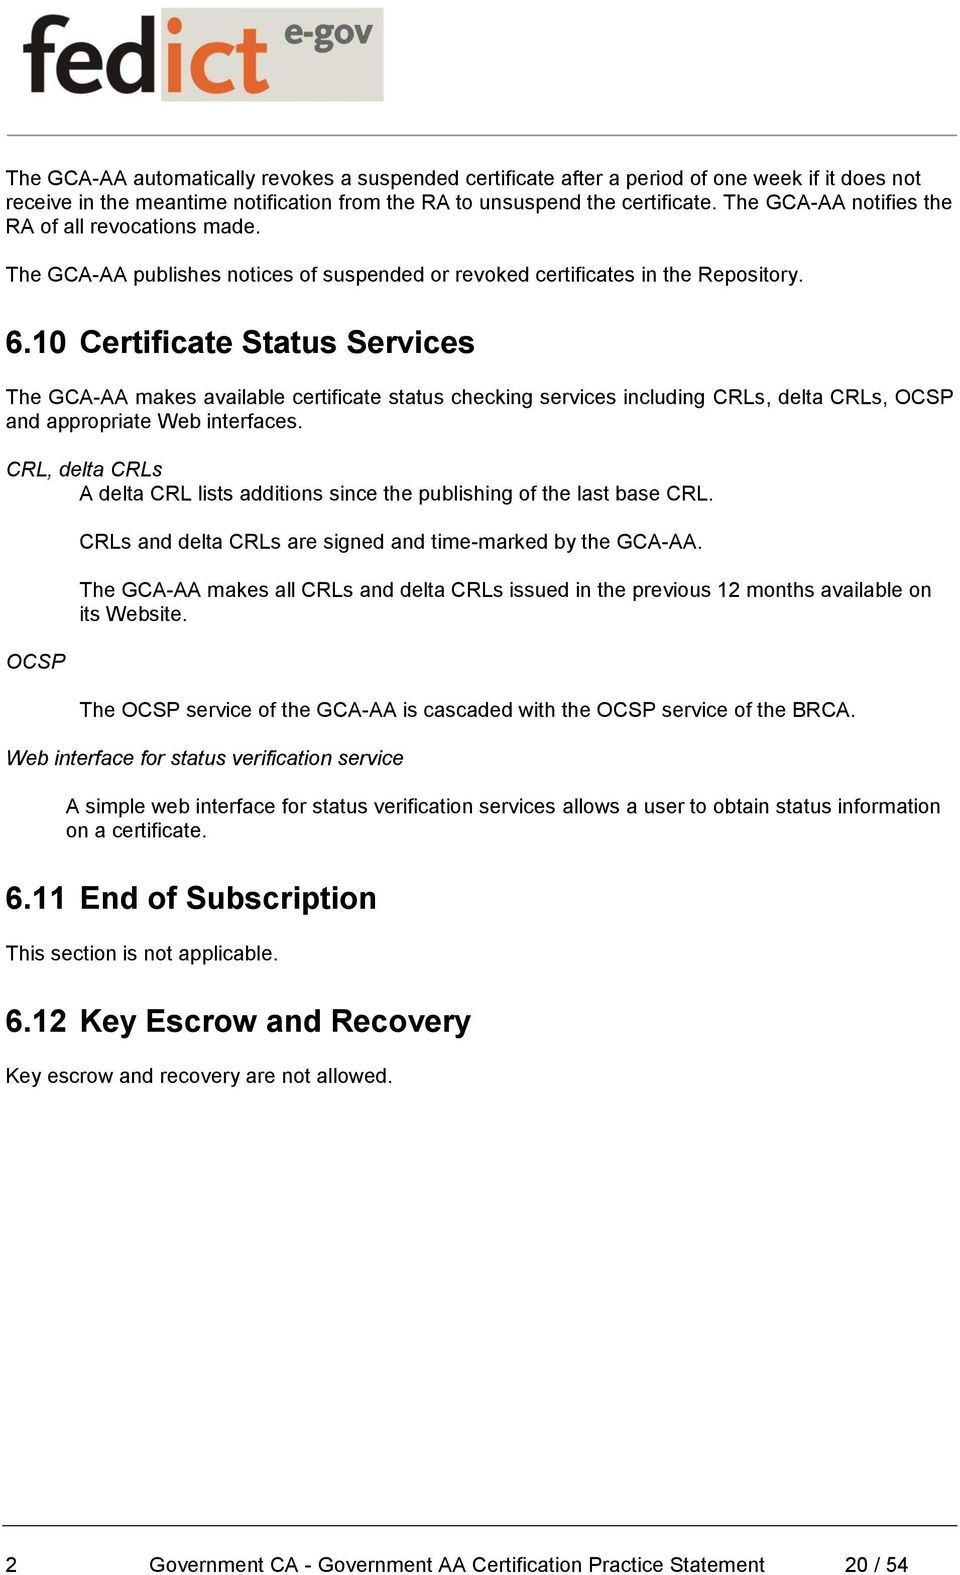 10 Certificate Status Services The GCA-AA makes available certificate status checking services including CRLs, delta CRLs, OCSP and appropriate Web interfaces.